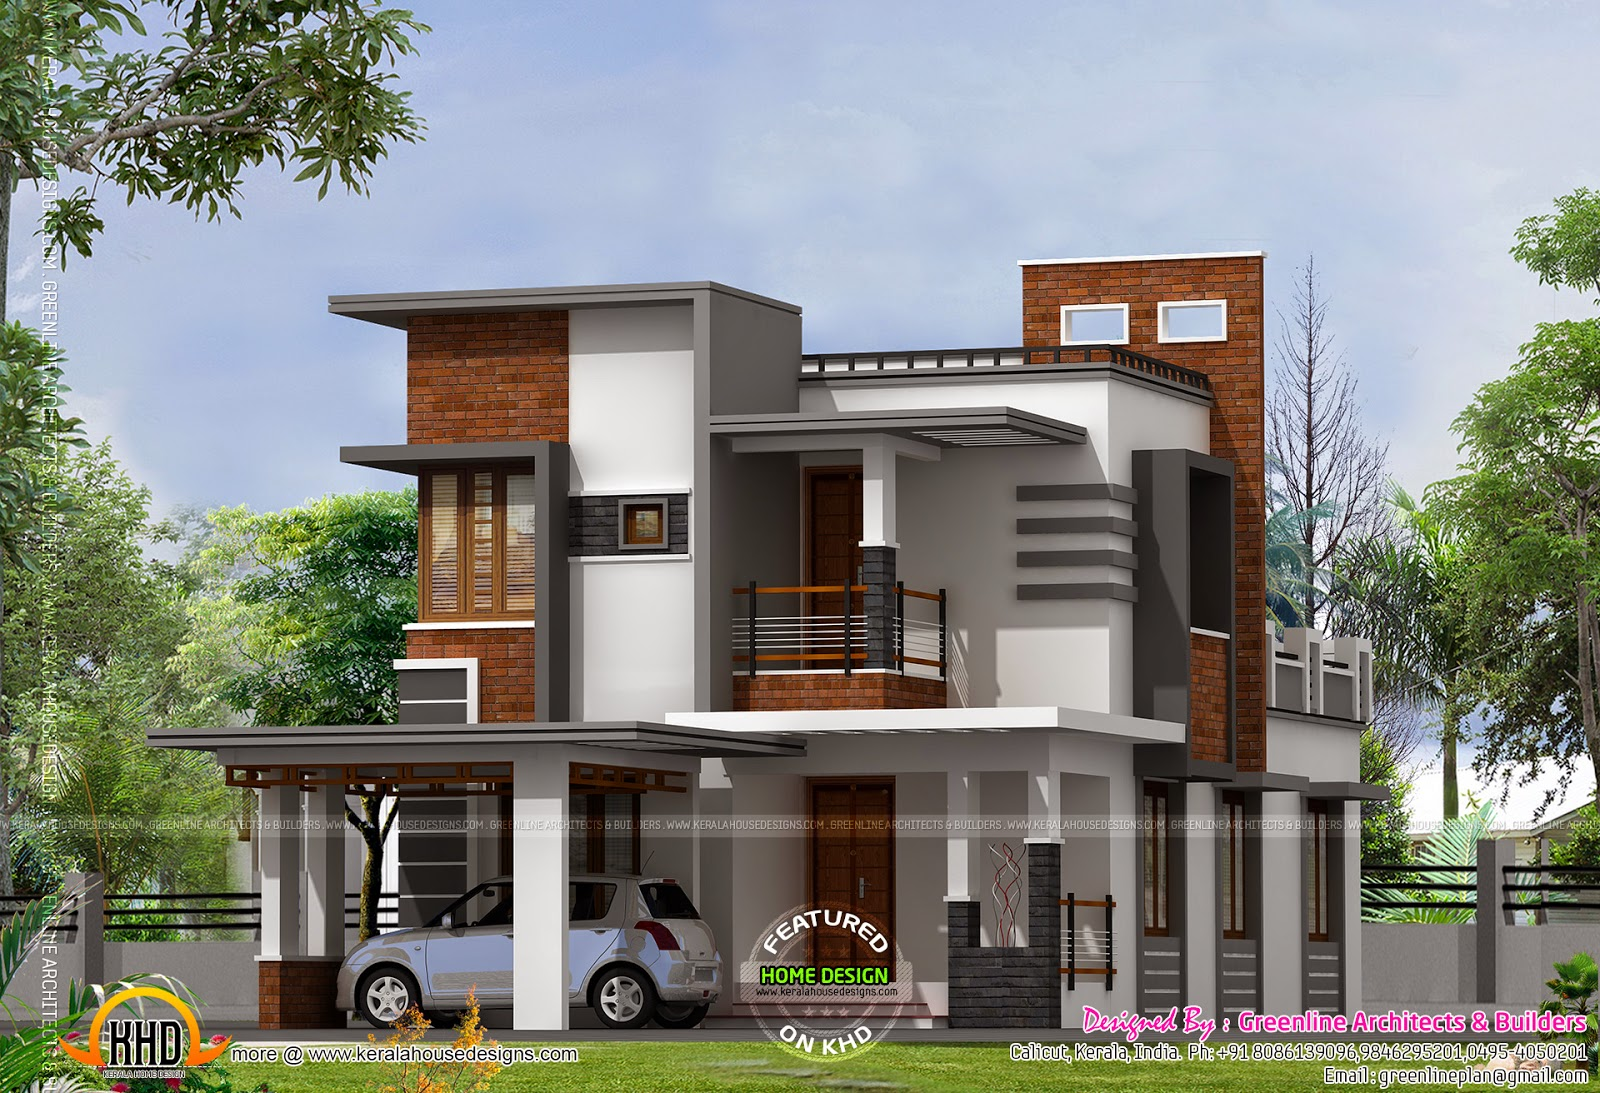 Low cost contemporary house kerala home design and floor for Low cost building